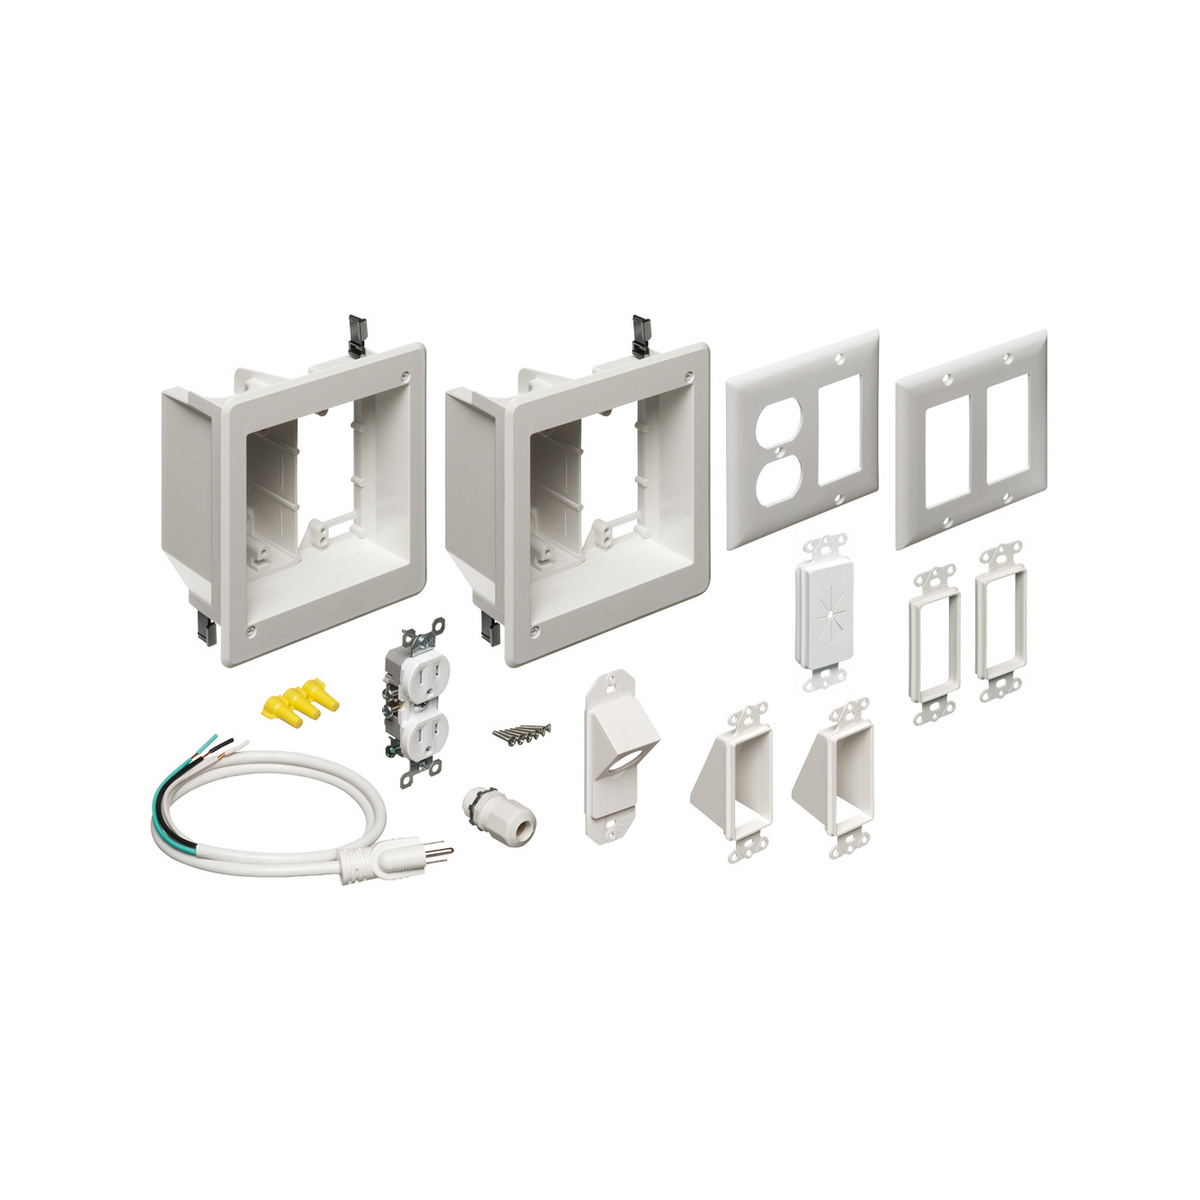 Arlington TVBR2505K 2 RECESSED TV BOX KIT